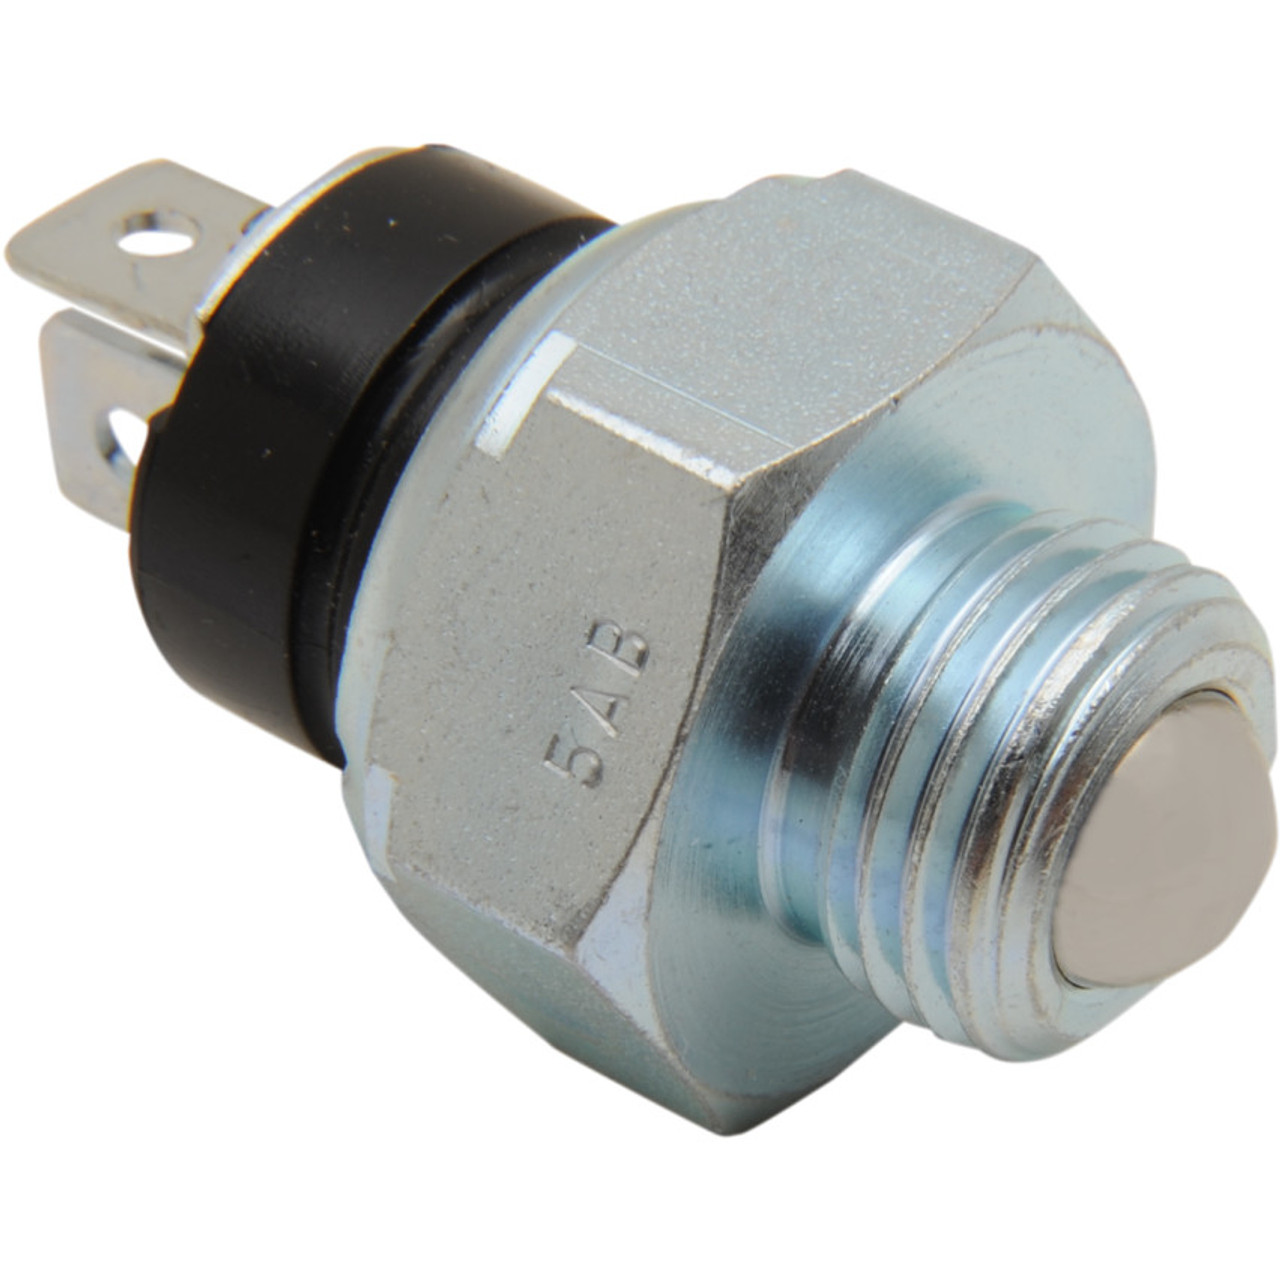 Drag specialties transmission neutral switch for harley repl oem drag specialties transmission neutral switch for harley repl oem 71507 71 publicscrutiny Images